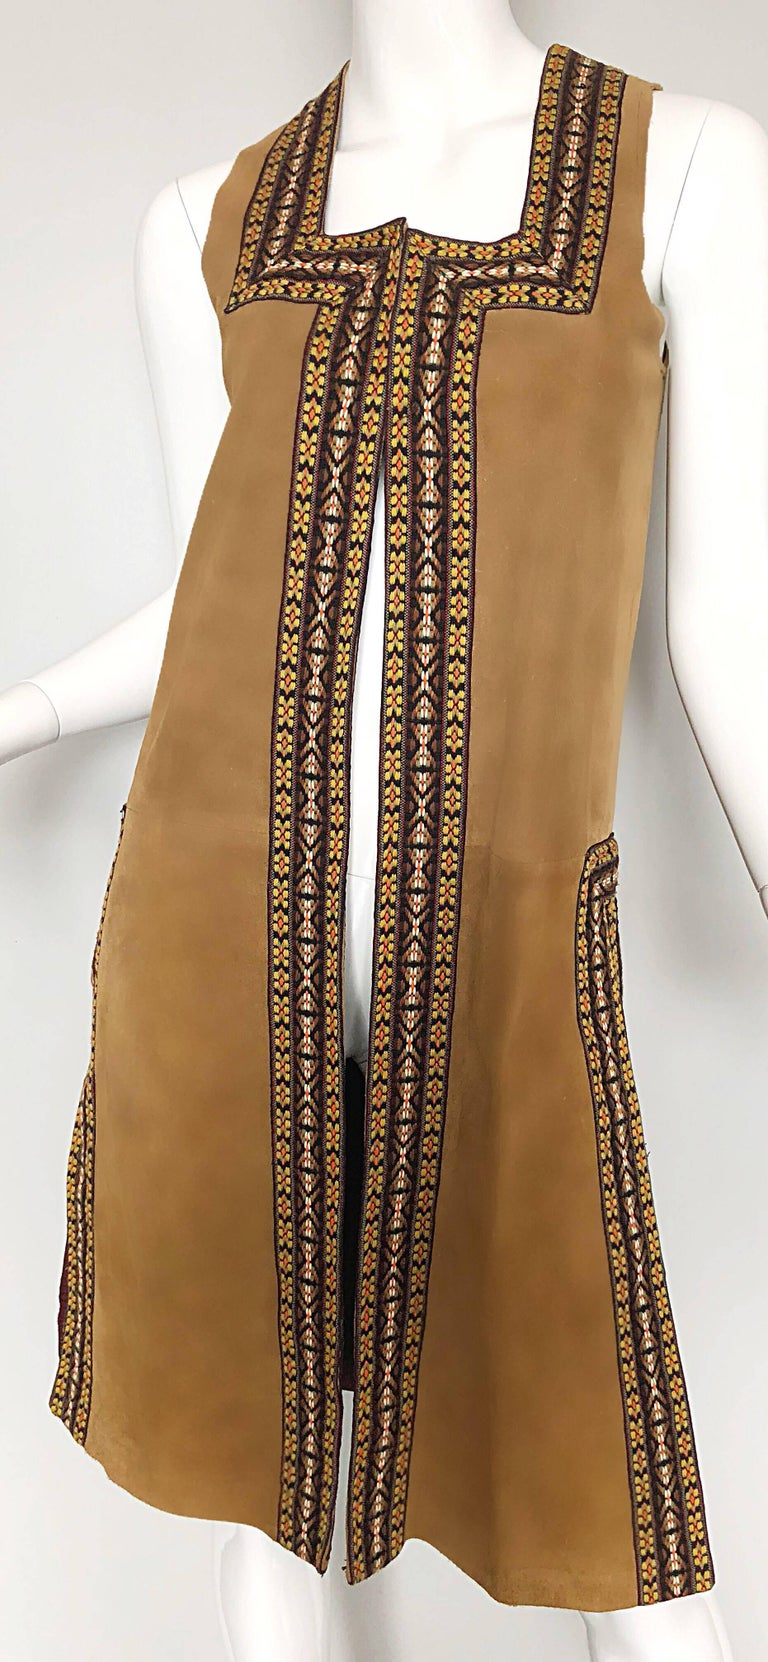 Chic 1970s Tan Suede Leather Embroidered 70s Vintage Boho